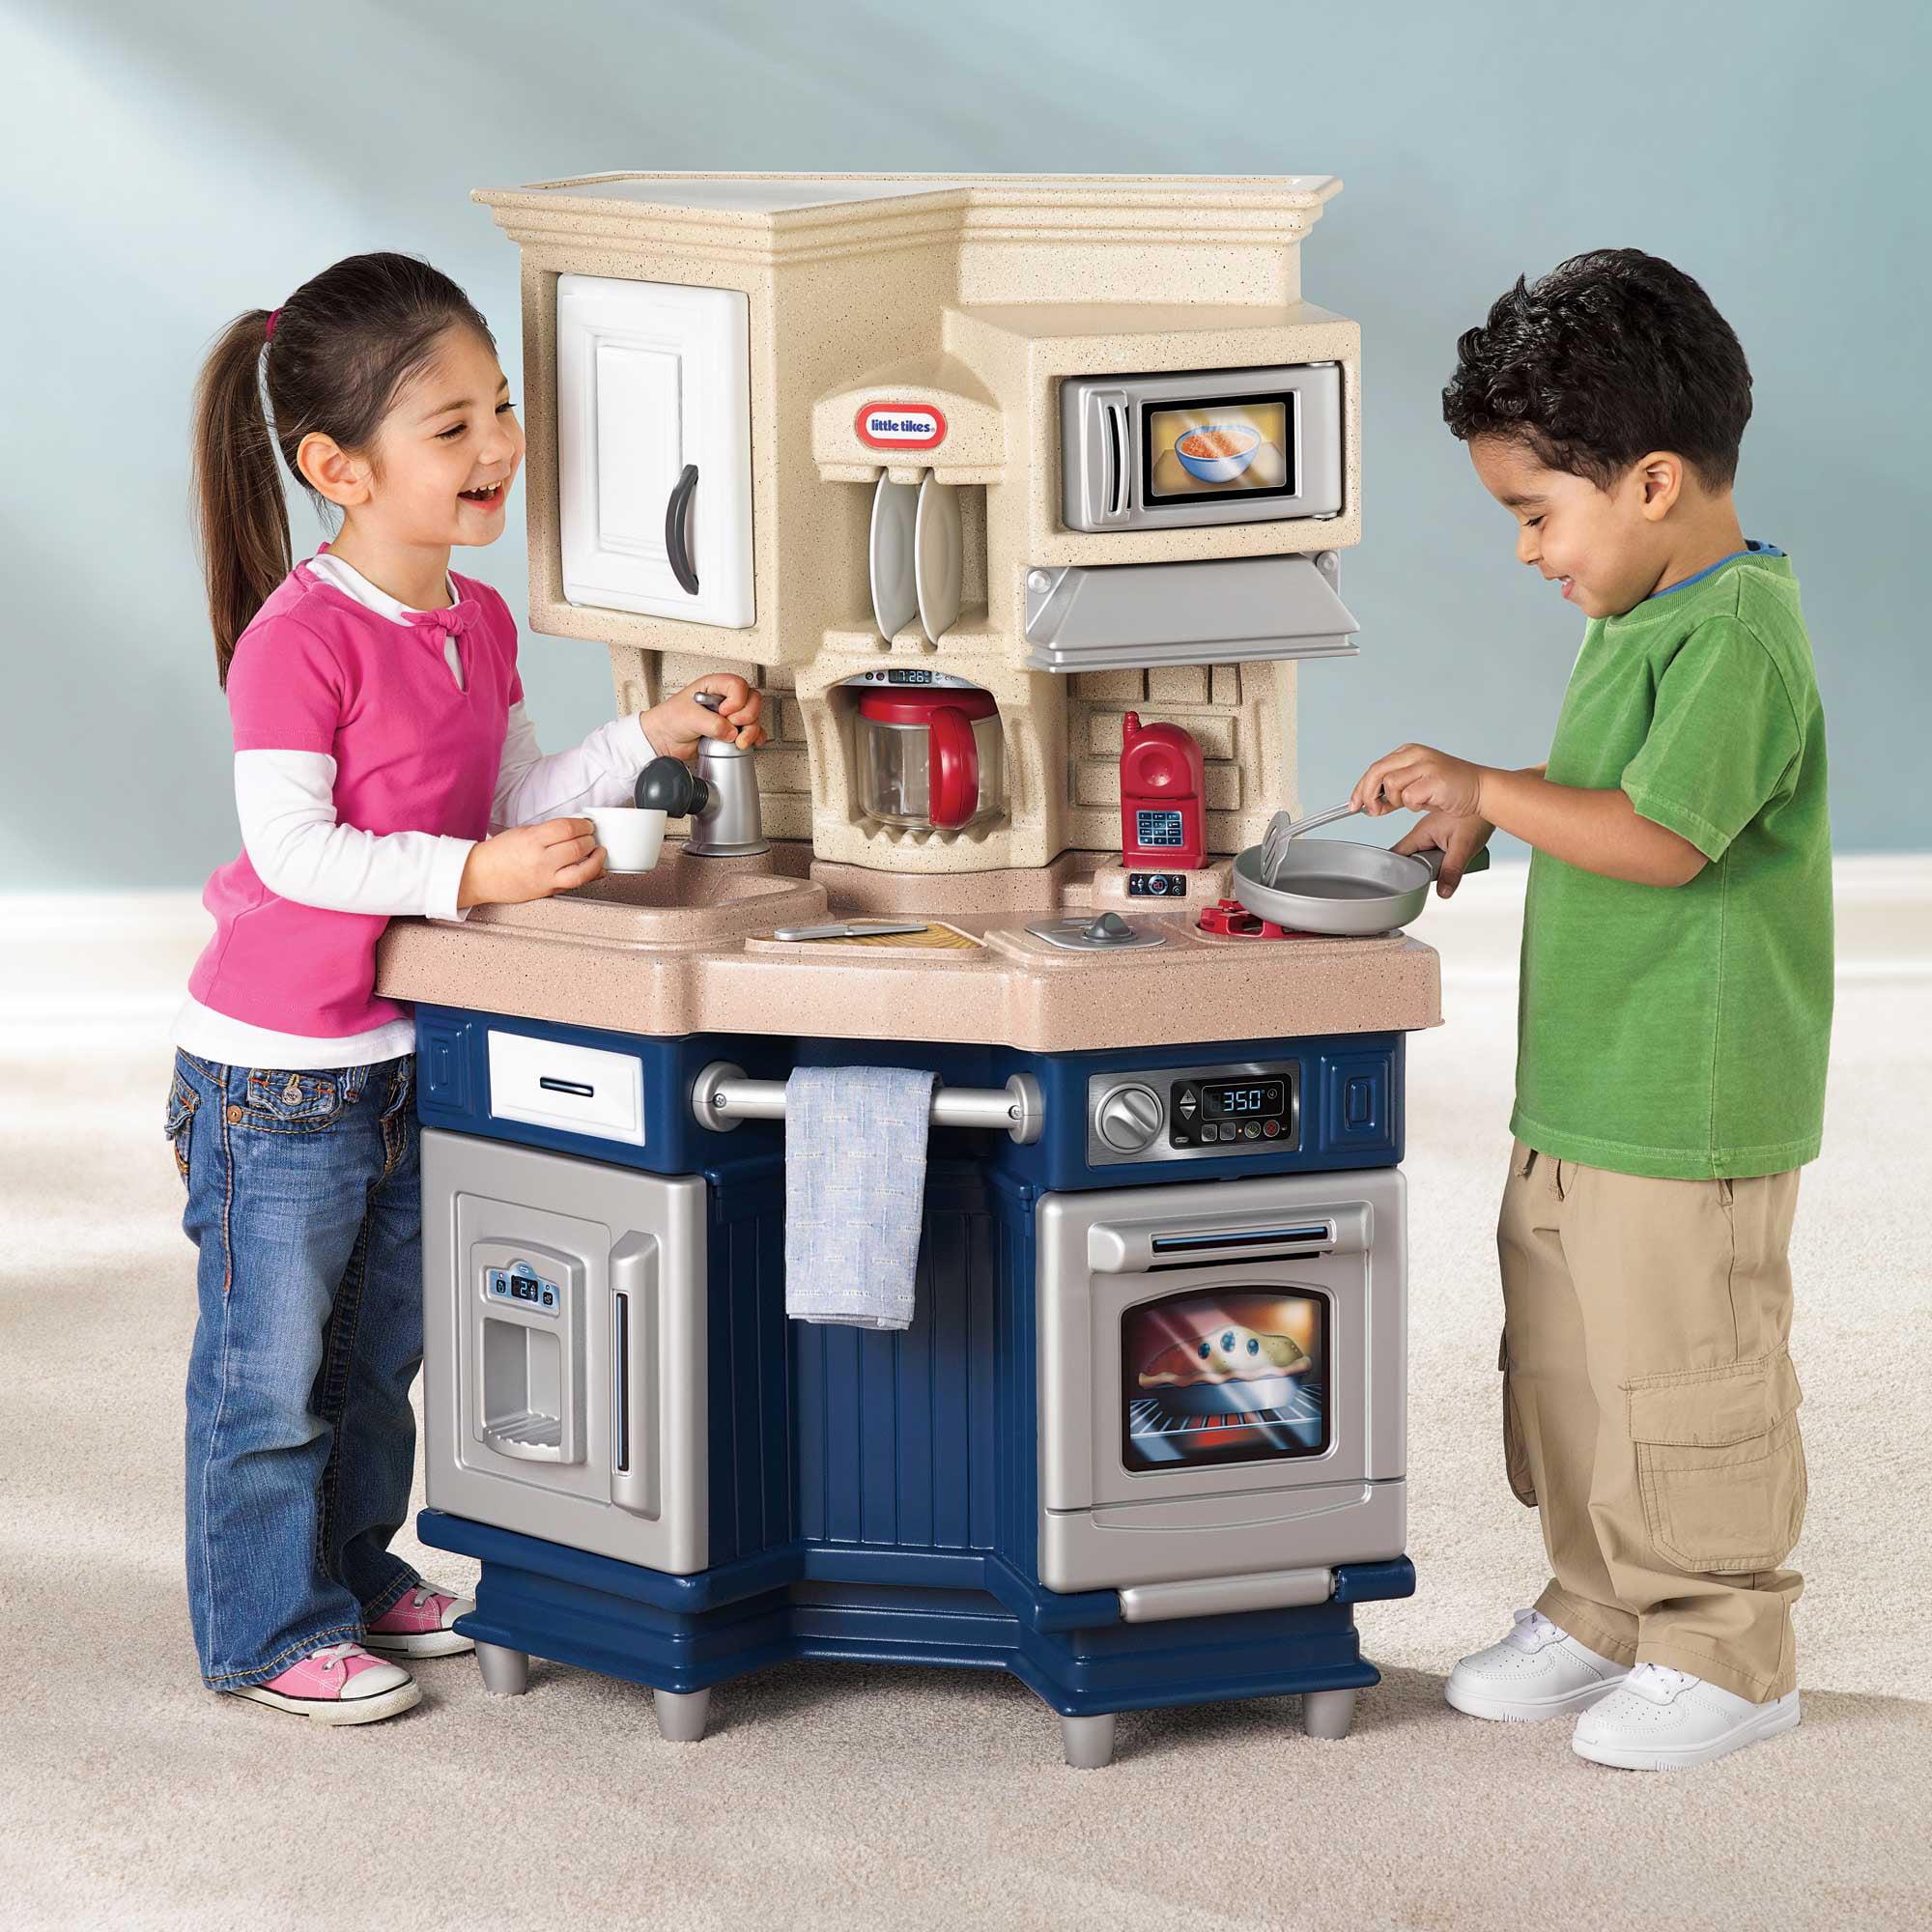 Little Tikes Super Chef Play Kitchen with 13 Piece Accessory Set -  Walmart.com